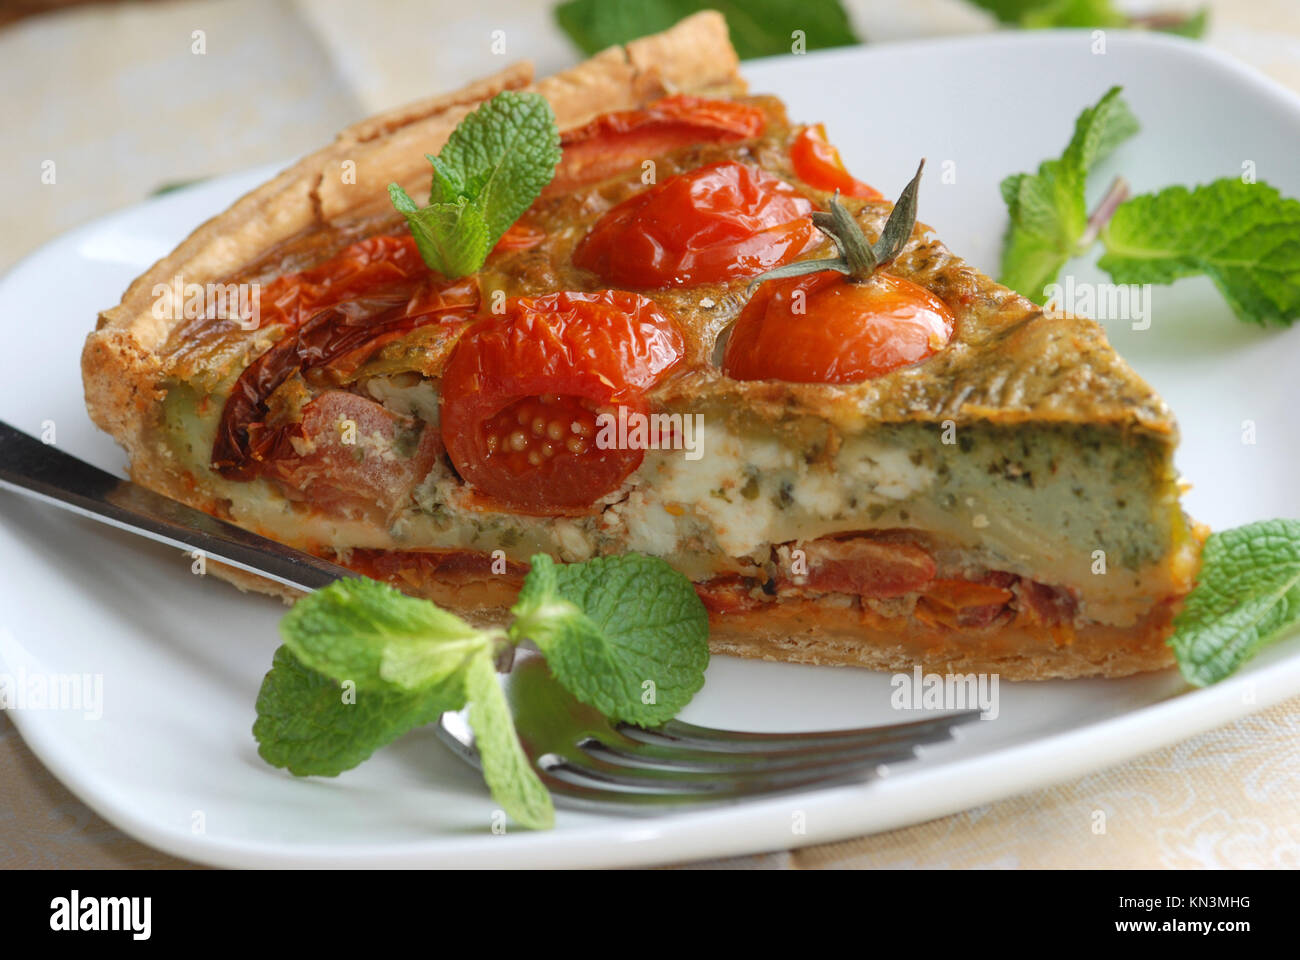 Freshly made tomato, basil and pesto quiche. - Stock Image